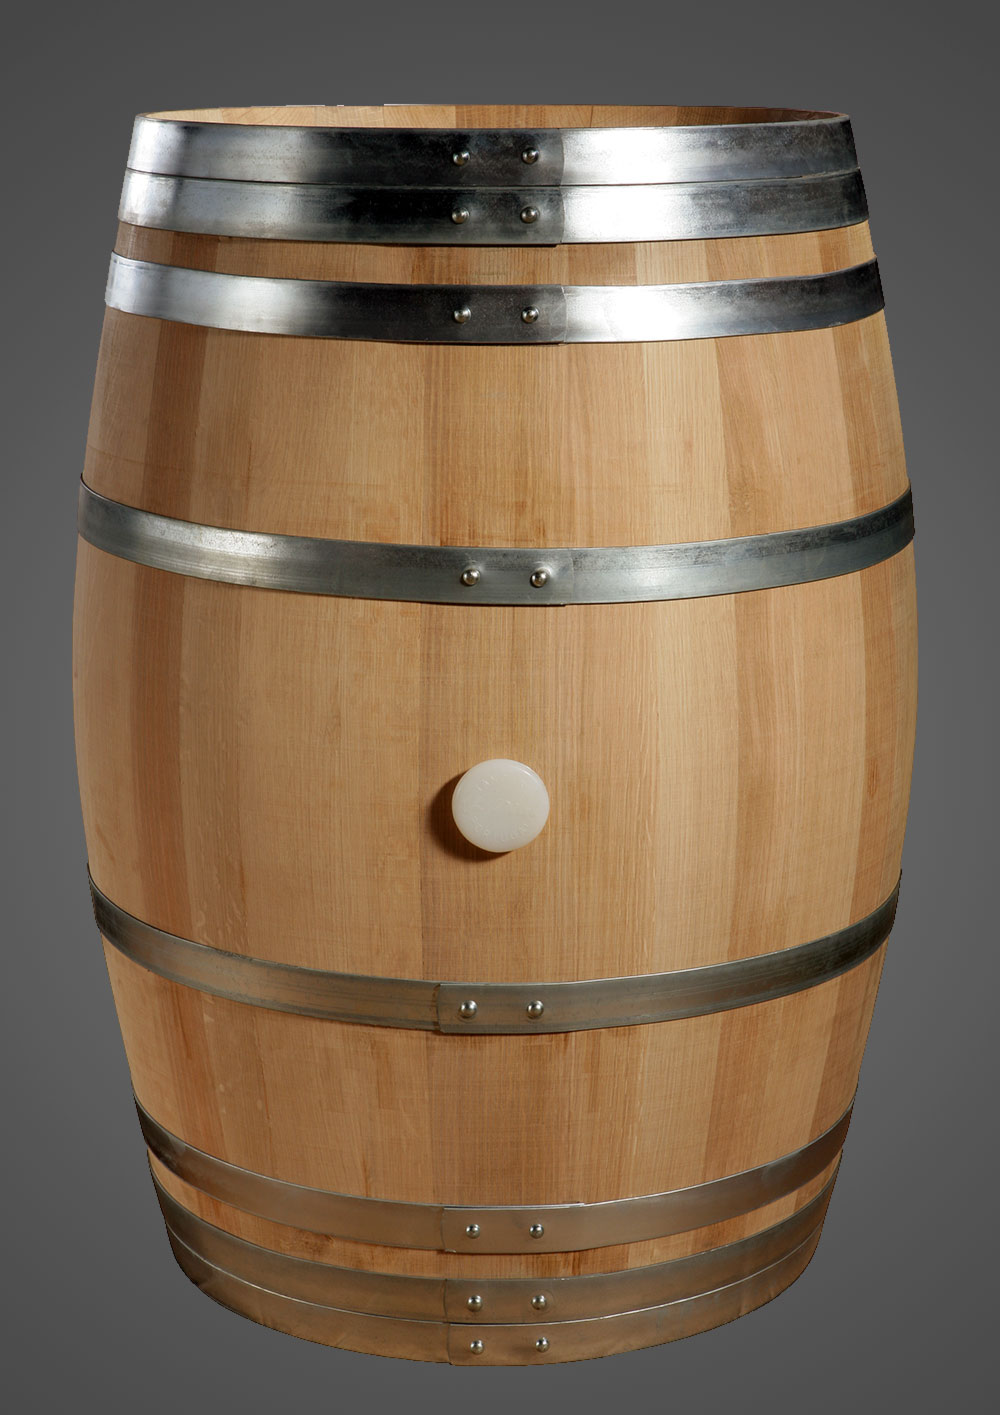 French oak Wine barrel